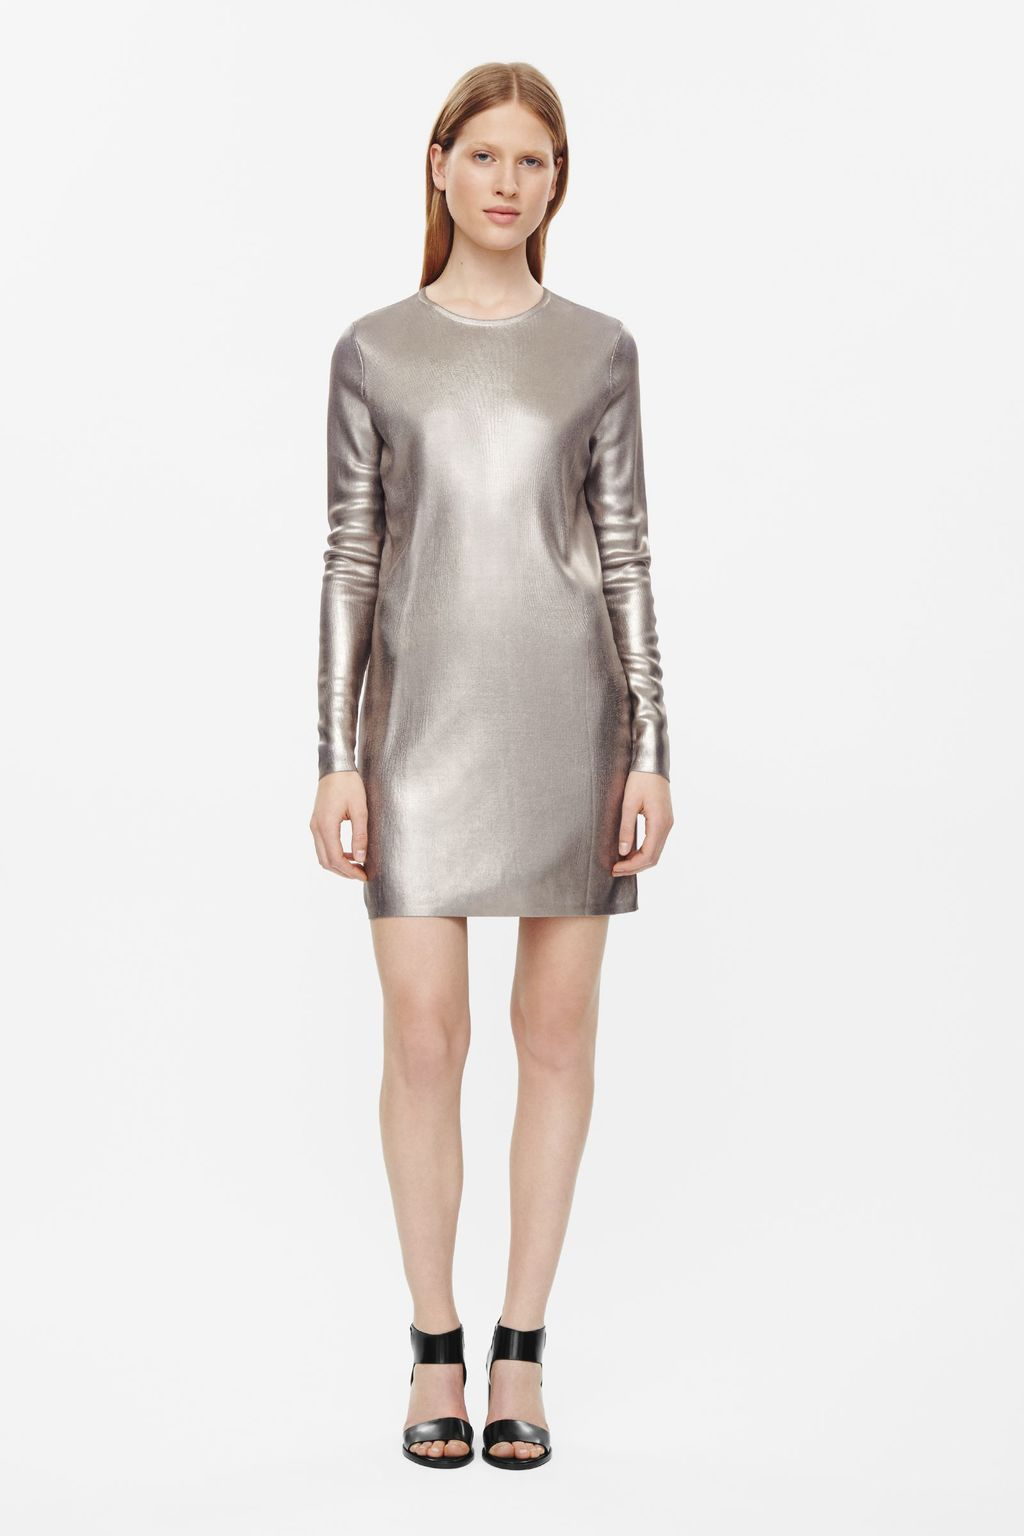 Metallic Coated Dress - style: t-shirt; length: mini; pattern: plain; predominant colour: gold; occasions: evening; fit: body skimming; fibres: polyester/polyamide - stretch; neckline: crew; sleeve length: long sleeve; sleeve style: standard; pattern type: fabric; texture group: jersey - stretchy/drapey; season: a/w 2015; wardrobe: event